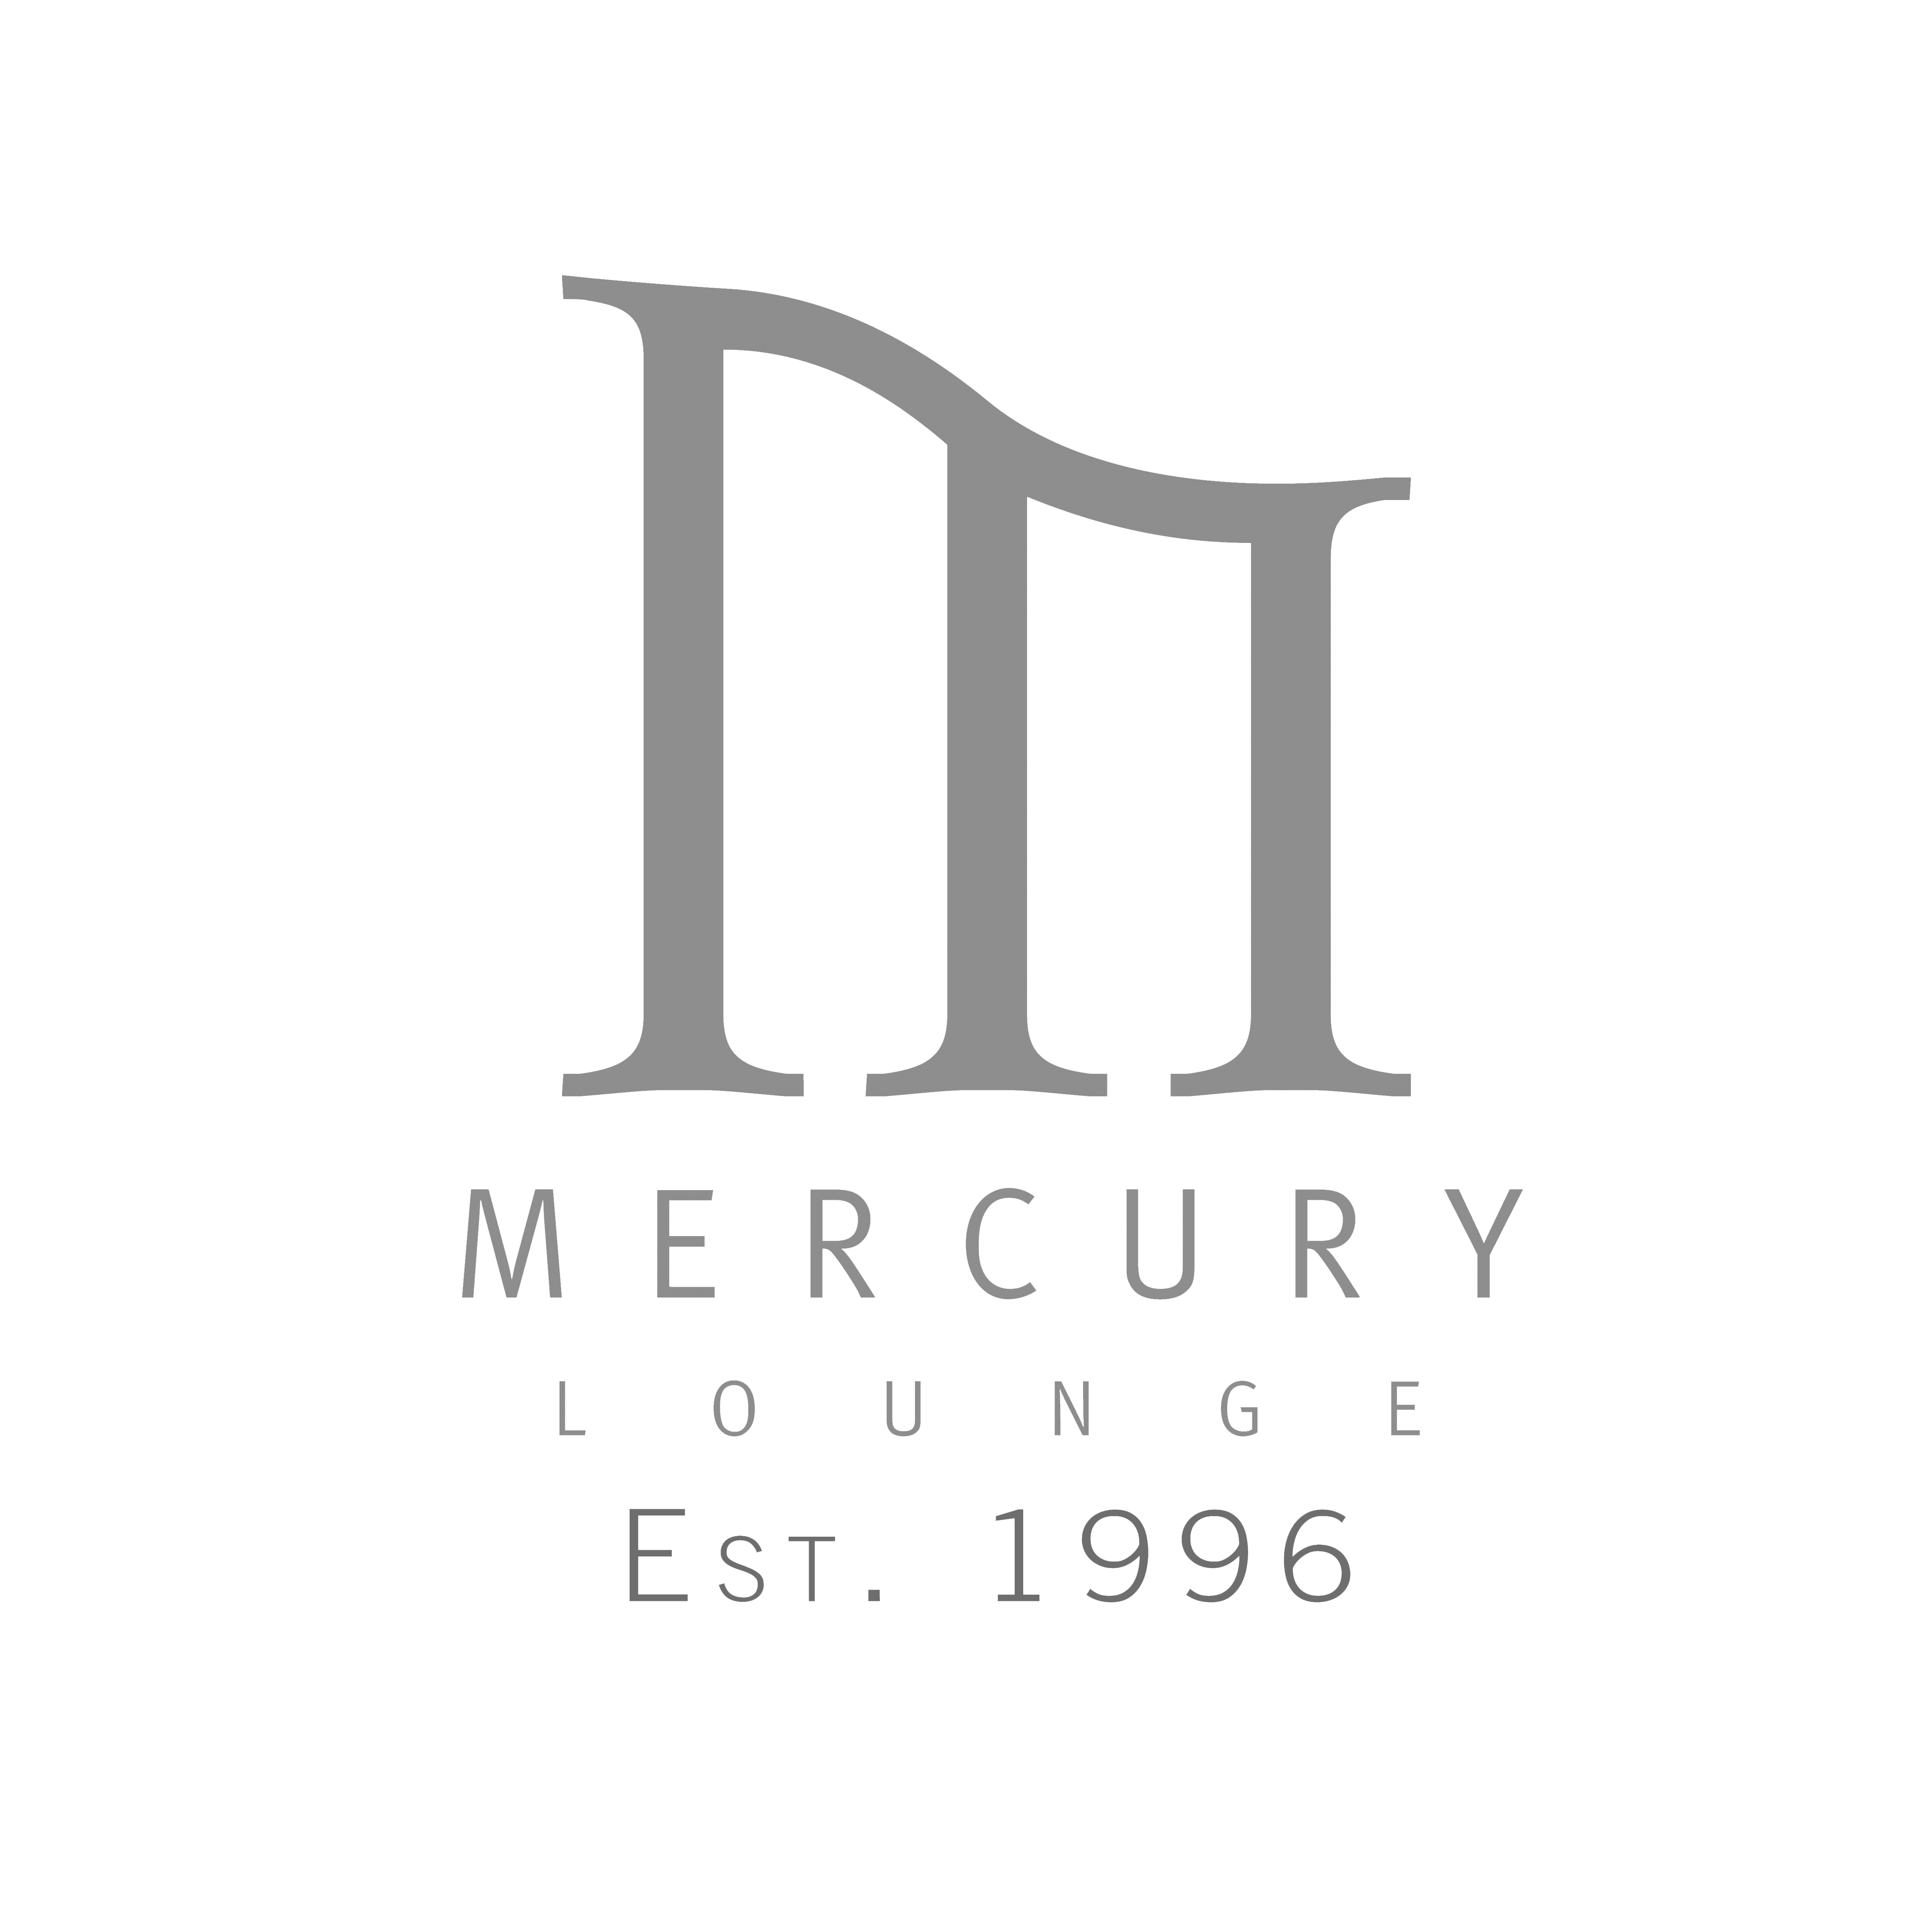 Mercury Lounge. Bar. Music. Ottawa Ontario Canada. Swag. Merch. Promotional merchandise. All Things Made. Tshirst. Screen printing. Branding. Promo. Swag. glassware. keychains.